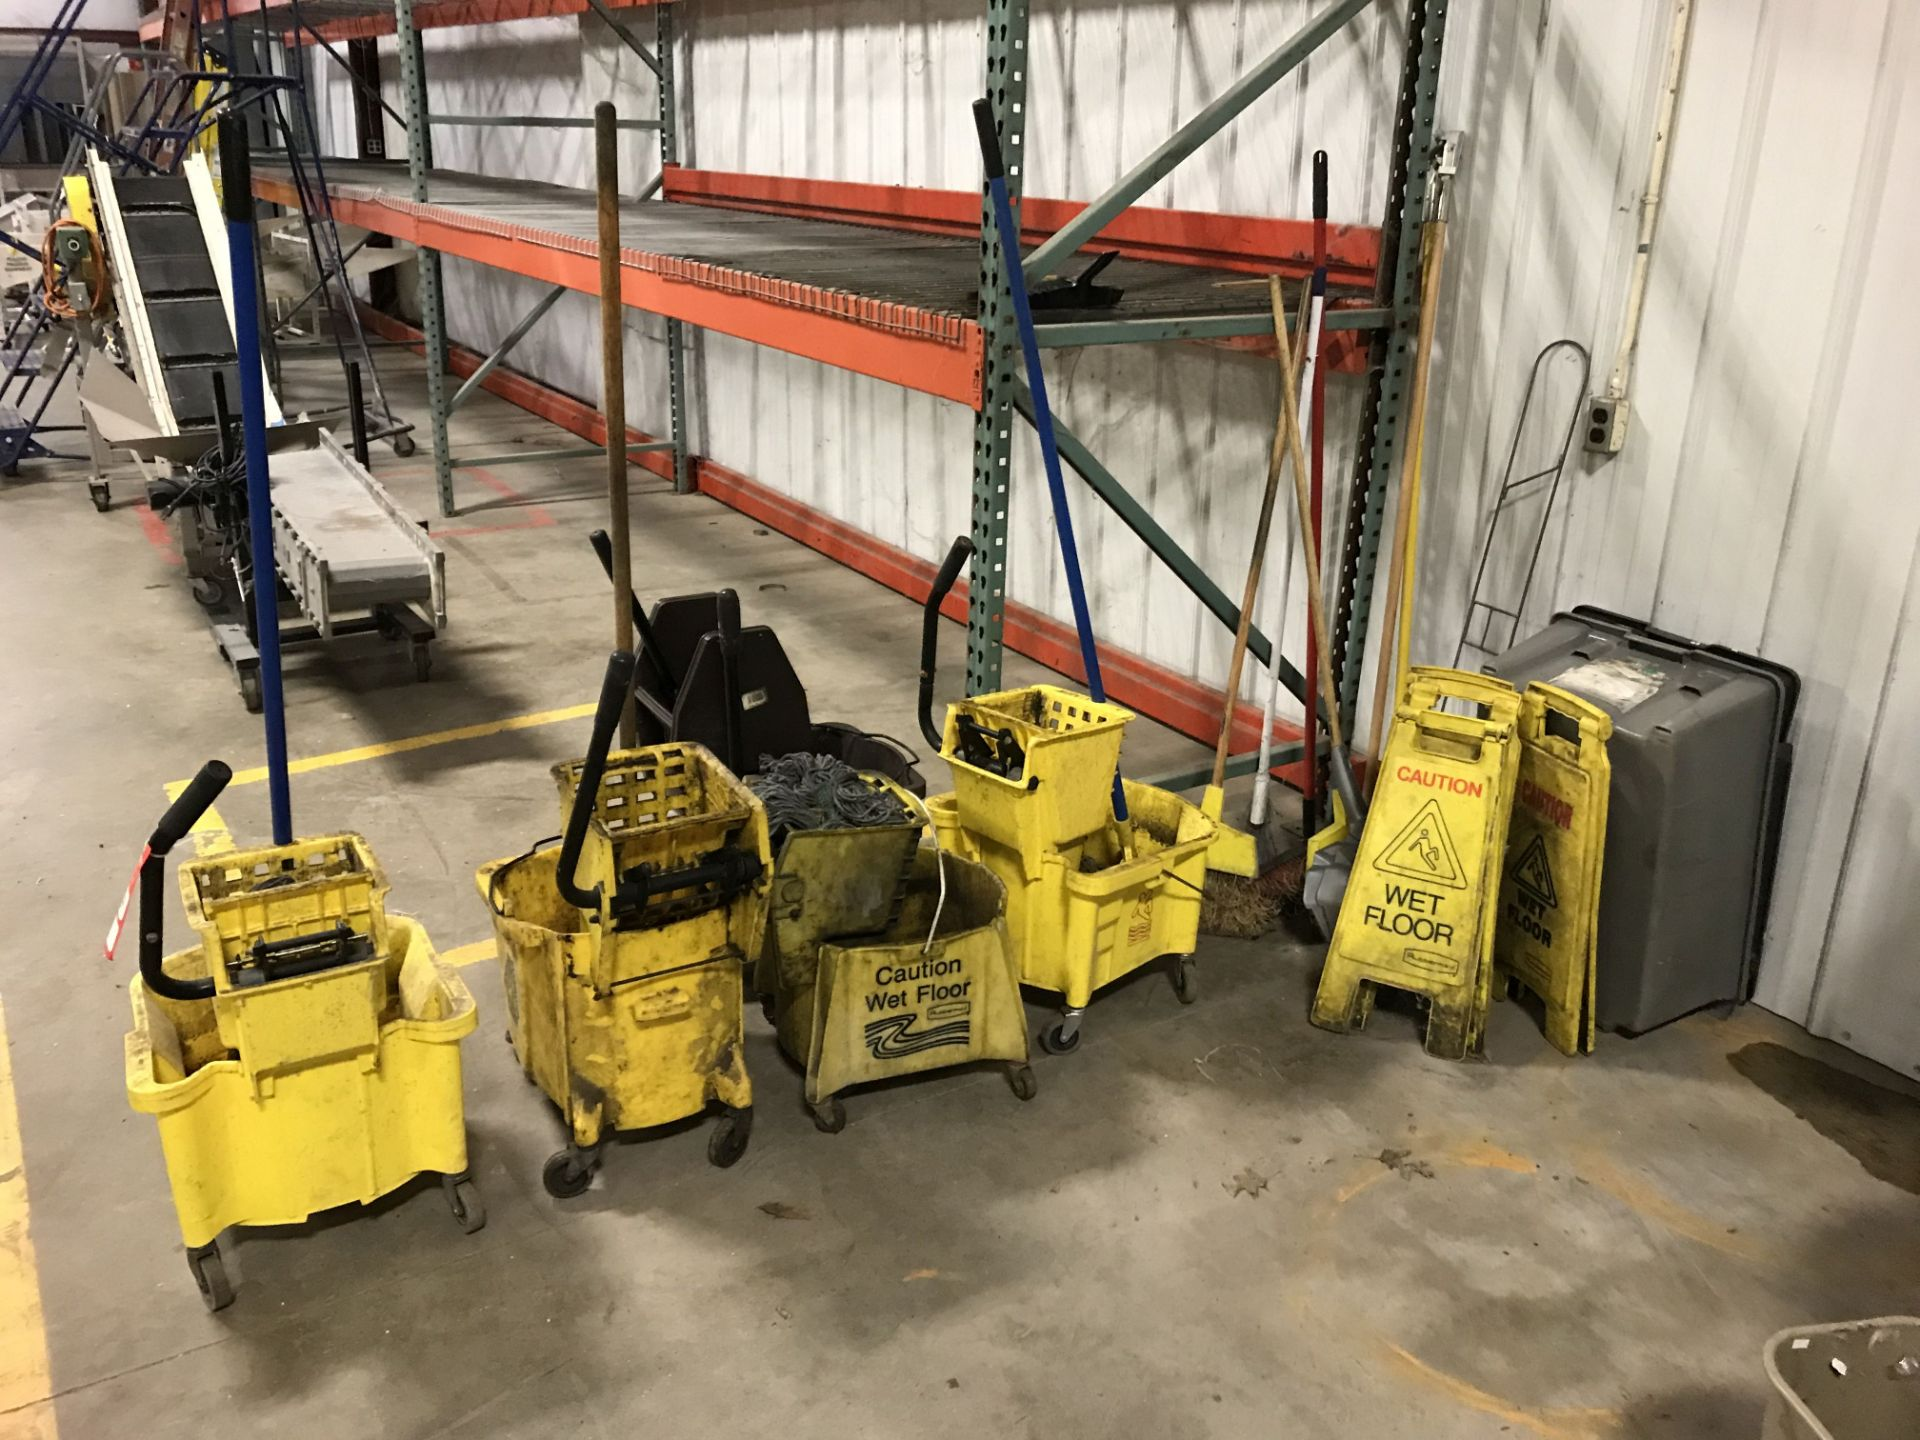 Lot 24 - ASSORTED MOP BUCKETS (5), CAUTION SIGNS, BROOMS [LOCATION: BUILDING 1]